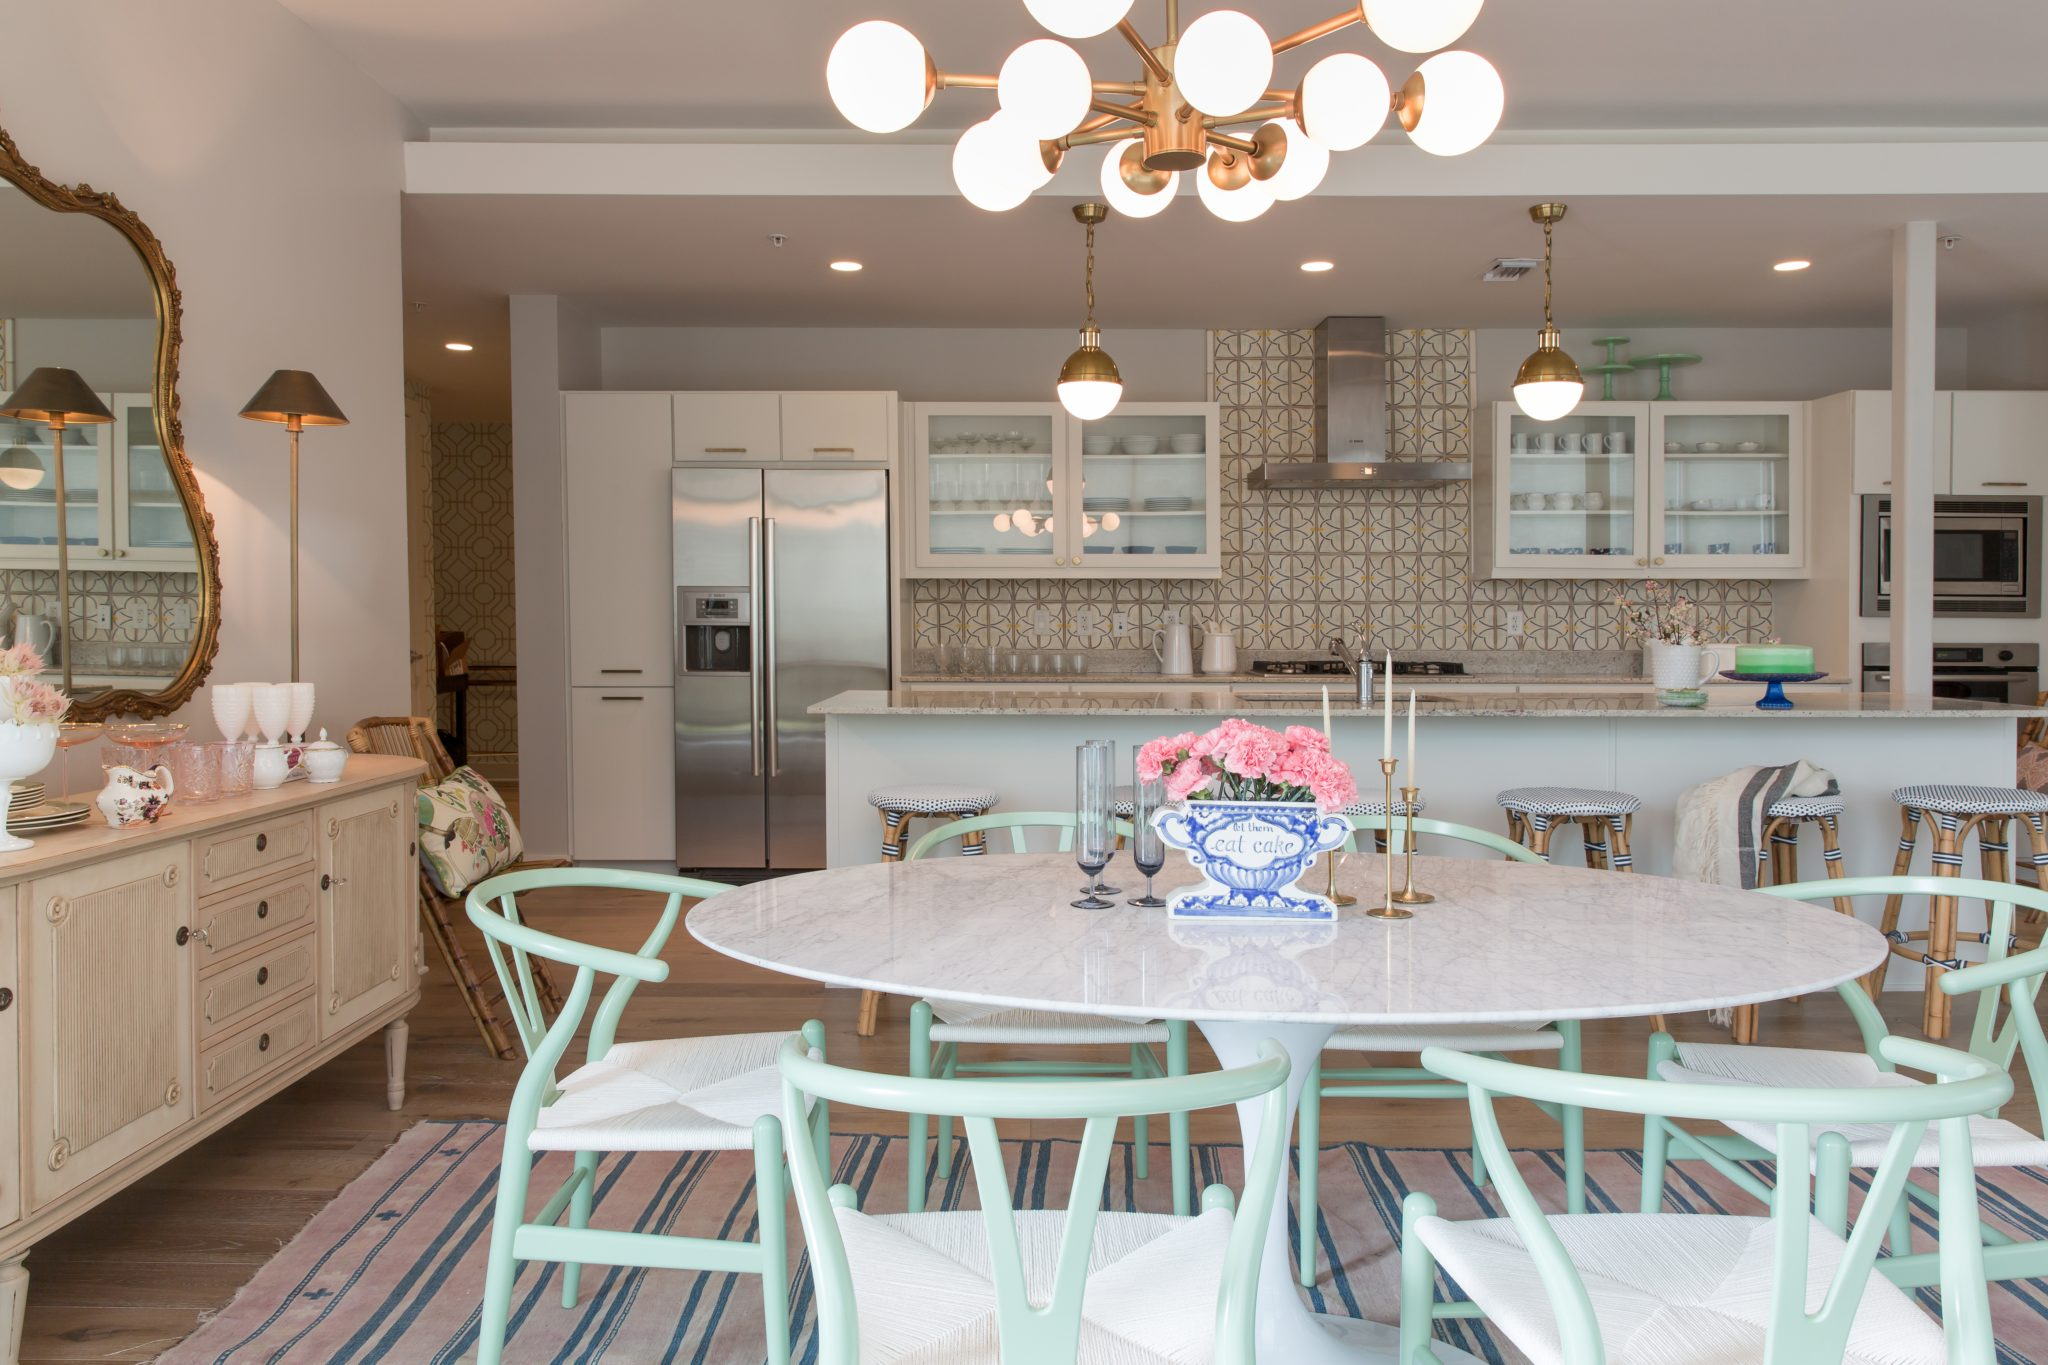 La Patisserie kitchen with wishbone chairs, gold globe lighting, and tulip table. By Maureen Stevens Design